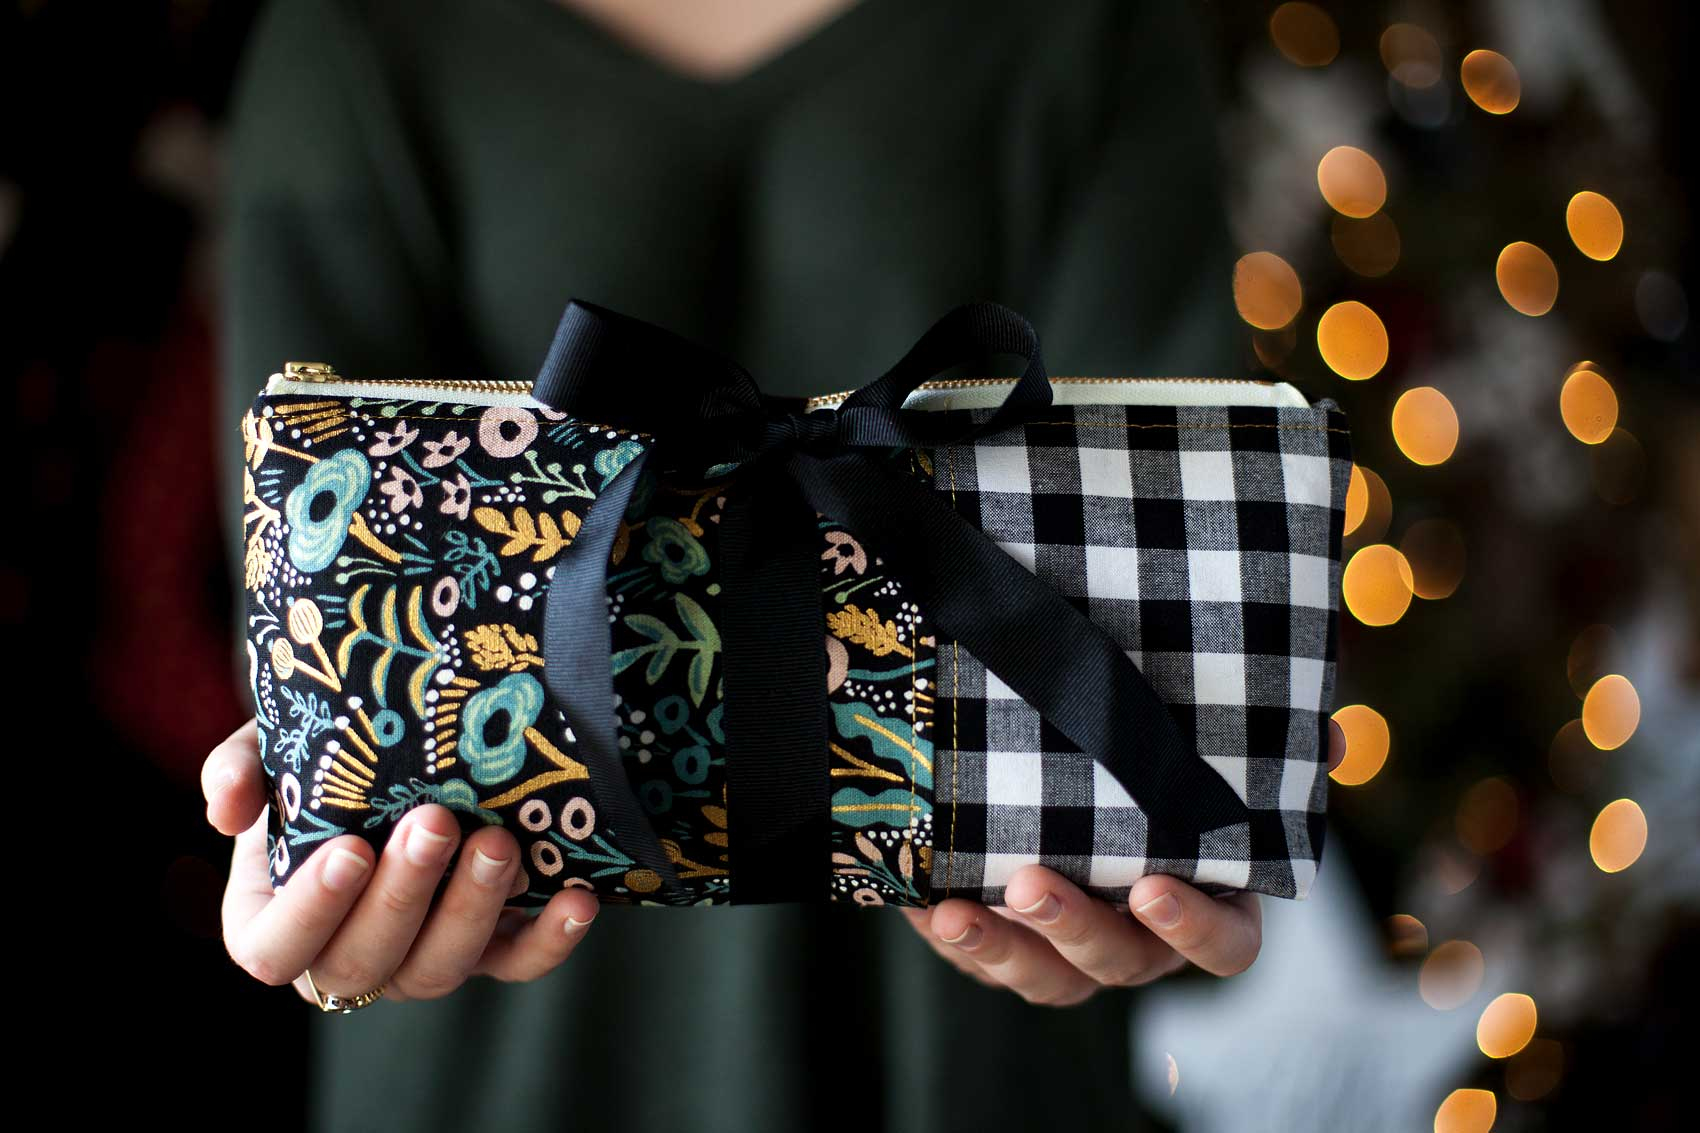 Everyone loves thoughtful homemade gifts and this stylish zipper pouch is the perfect gift to whip-up in a fews hours to give as a fabulous Christmas gift this year + you can take the guess work out of cutting the pattern with the Cricut Maker! Come on over and learn how to make one of your own on WhipperBerry.